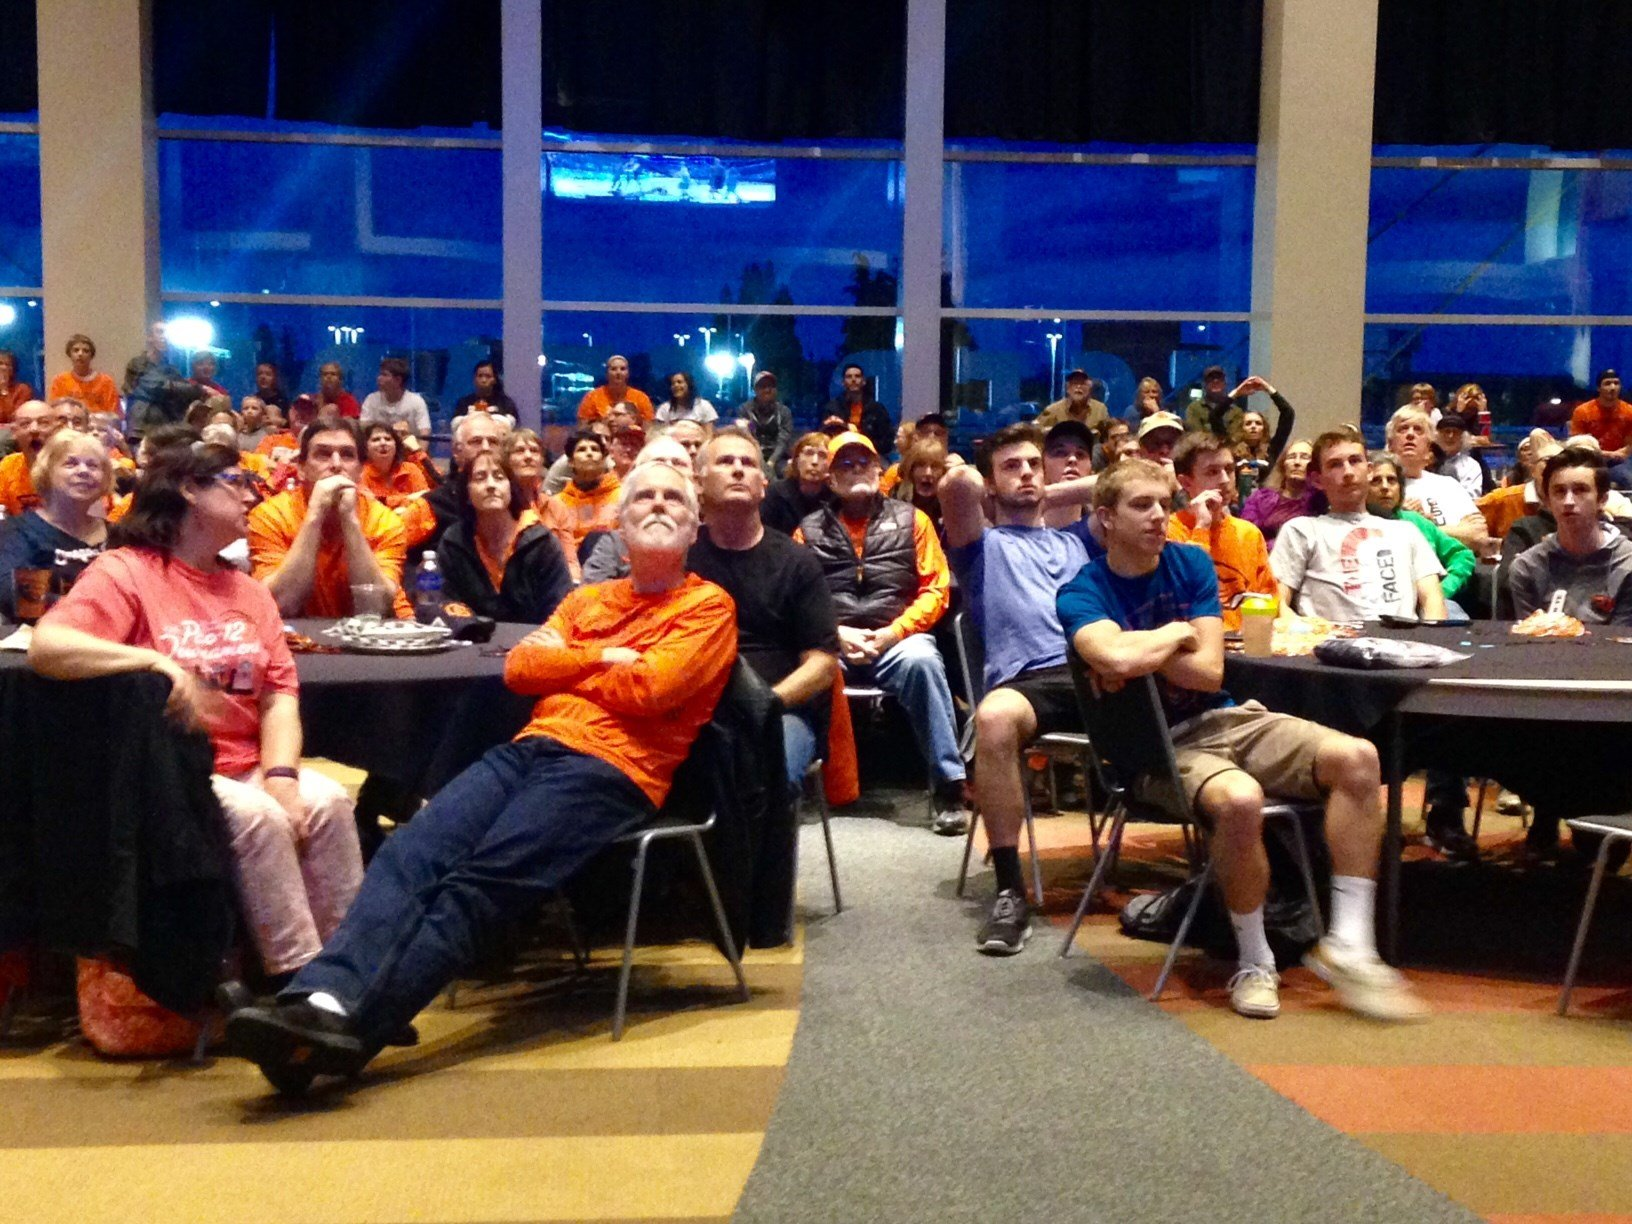 A crowd of alumni and fans gather to watch the OSU women's basketball team Monday. (KPTV)